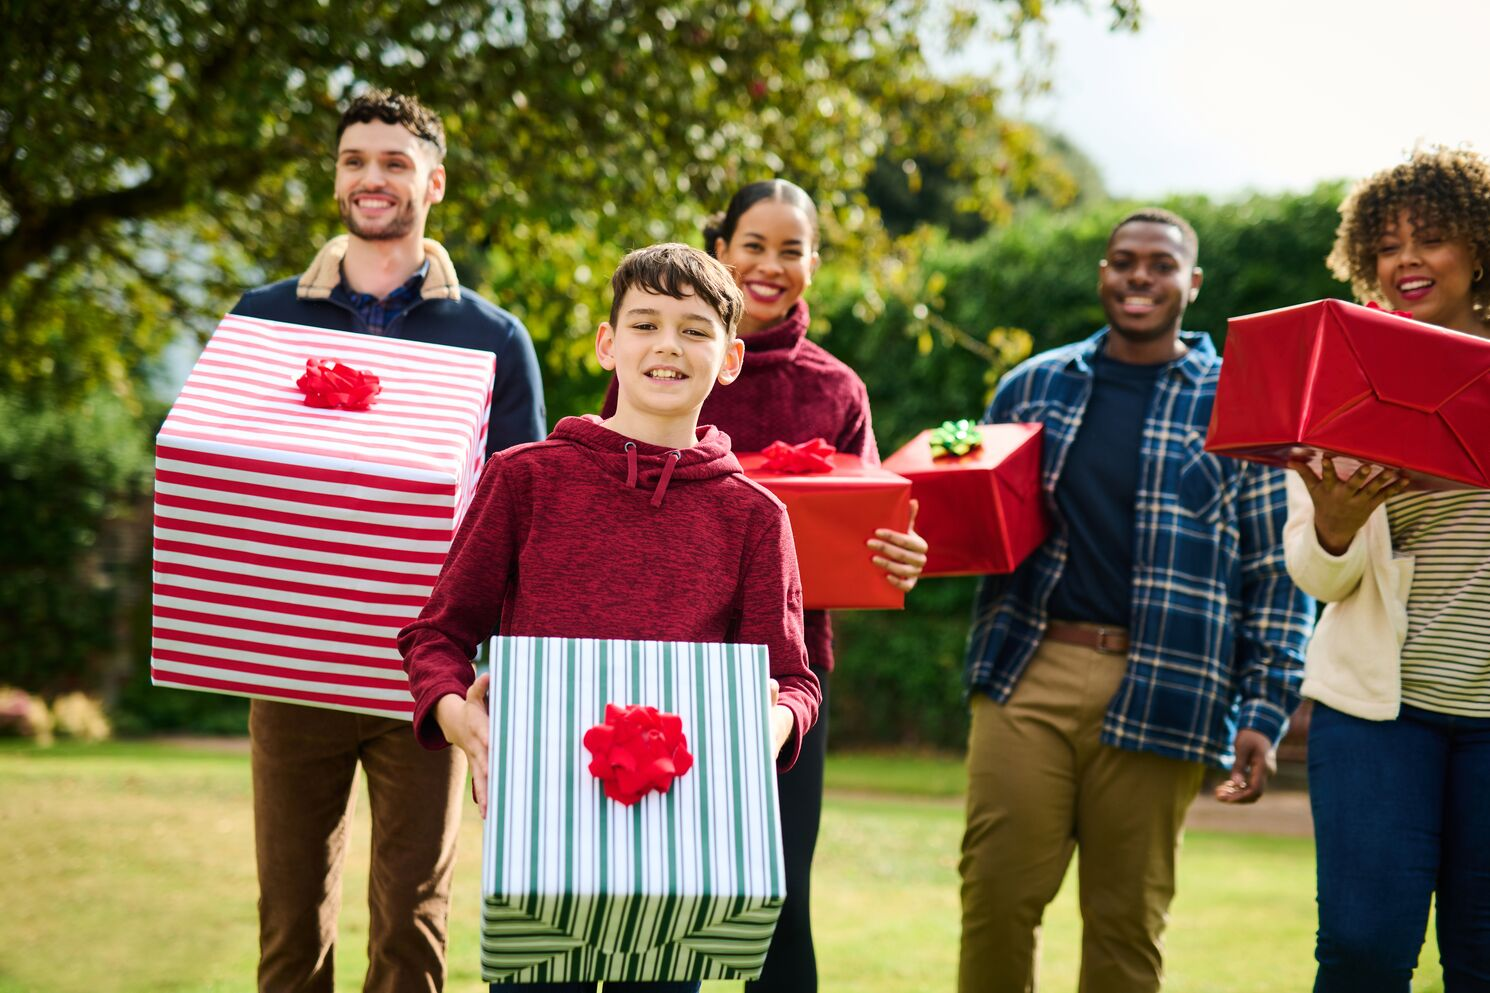 Christmas Gifts for Walkers, a family of 5 holding presents